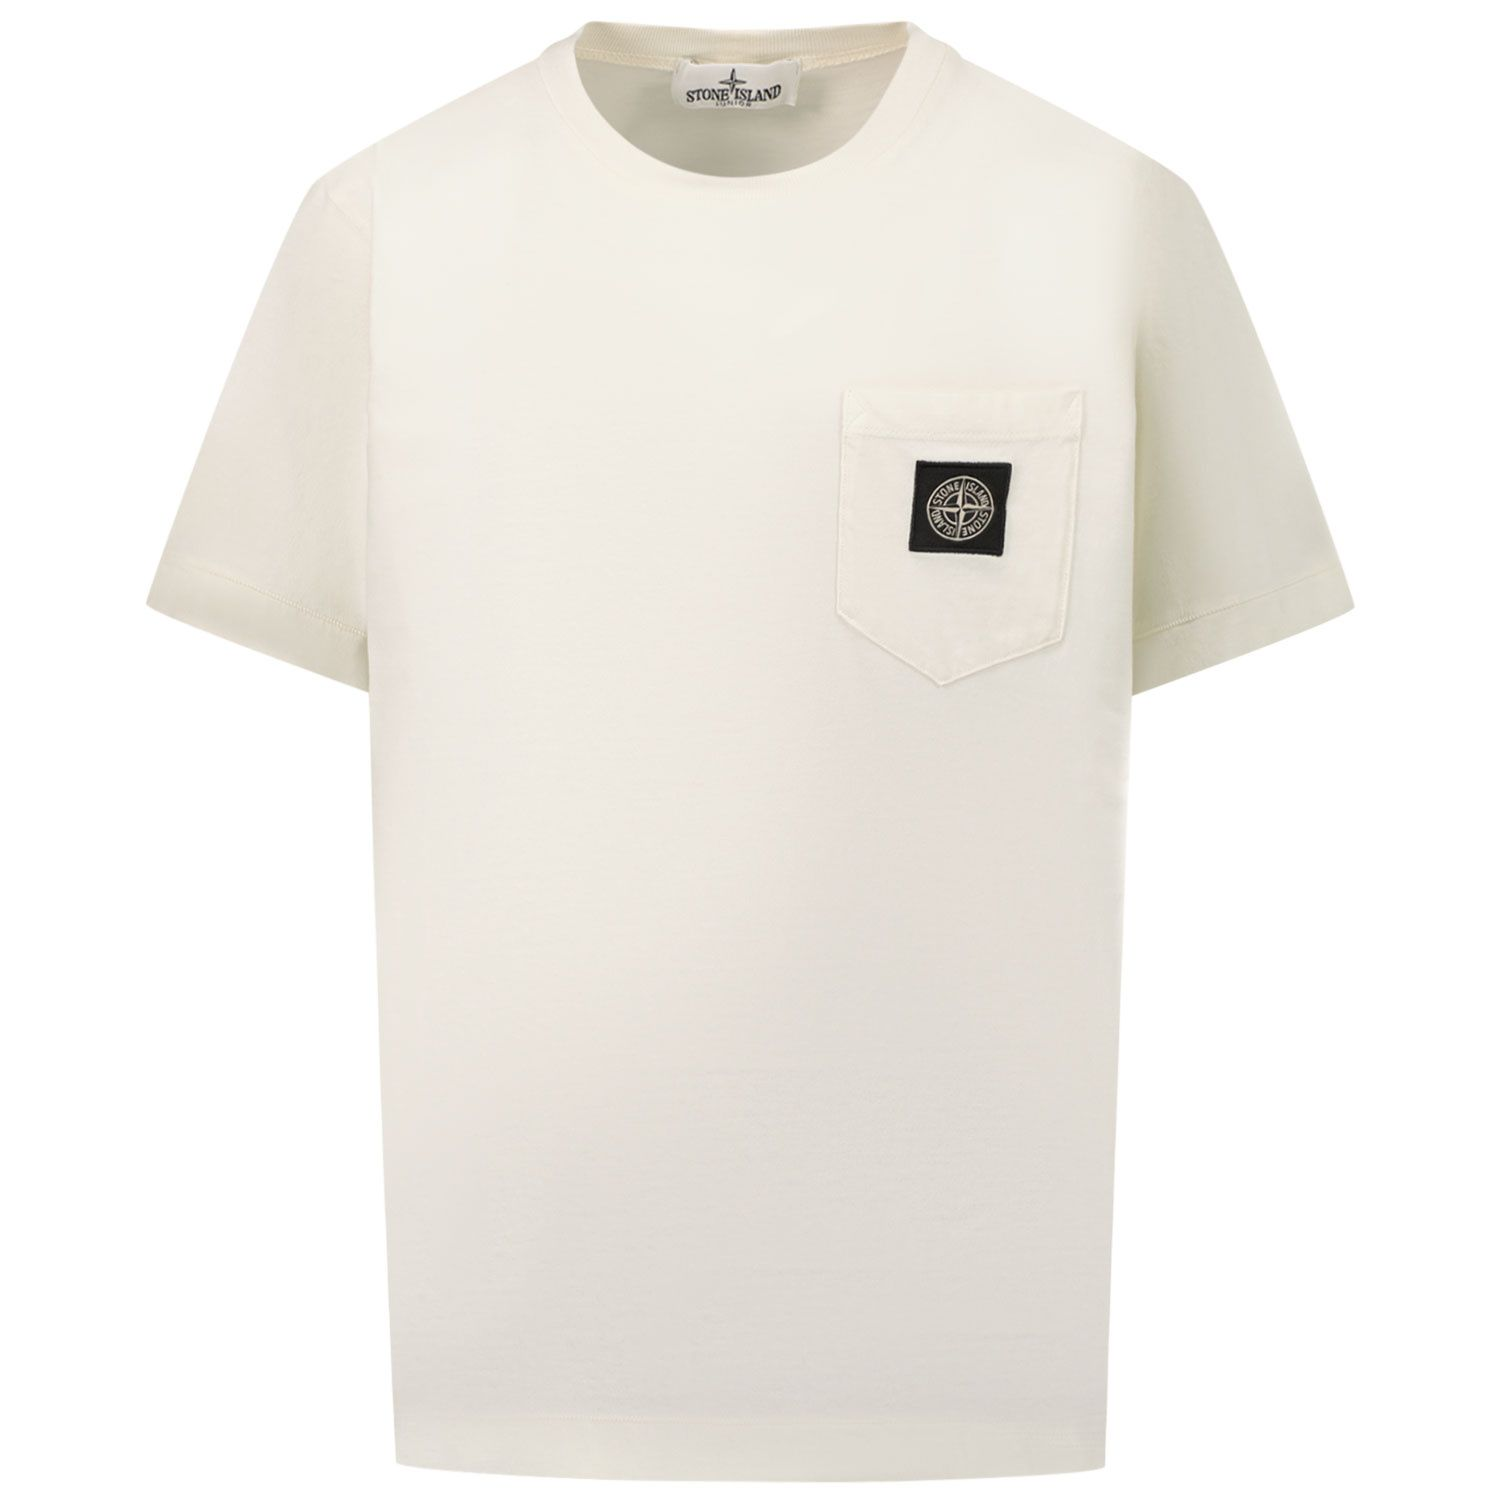 Afbeelding van Stone Island 20347 kinder t-shirt off white